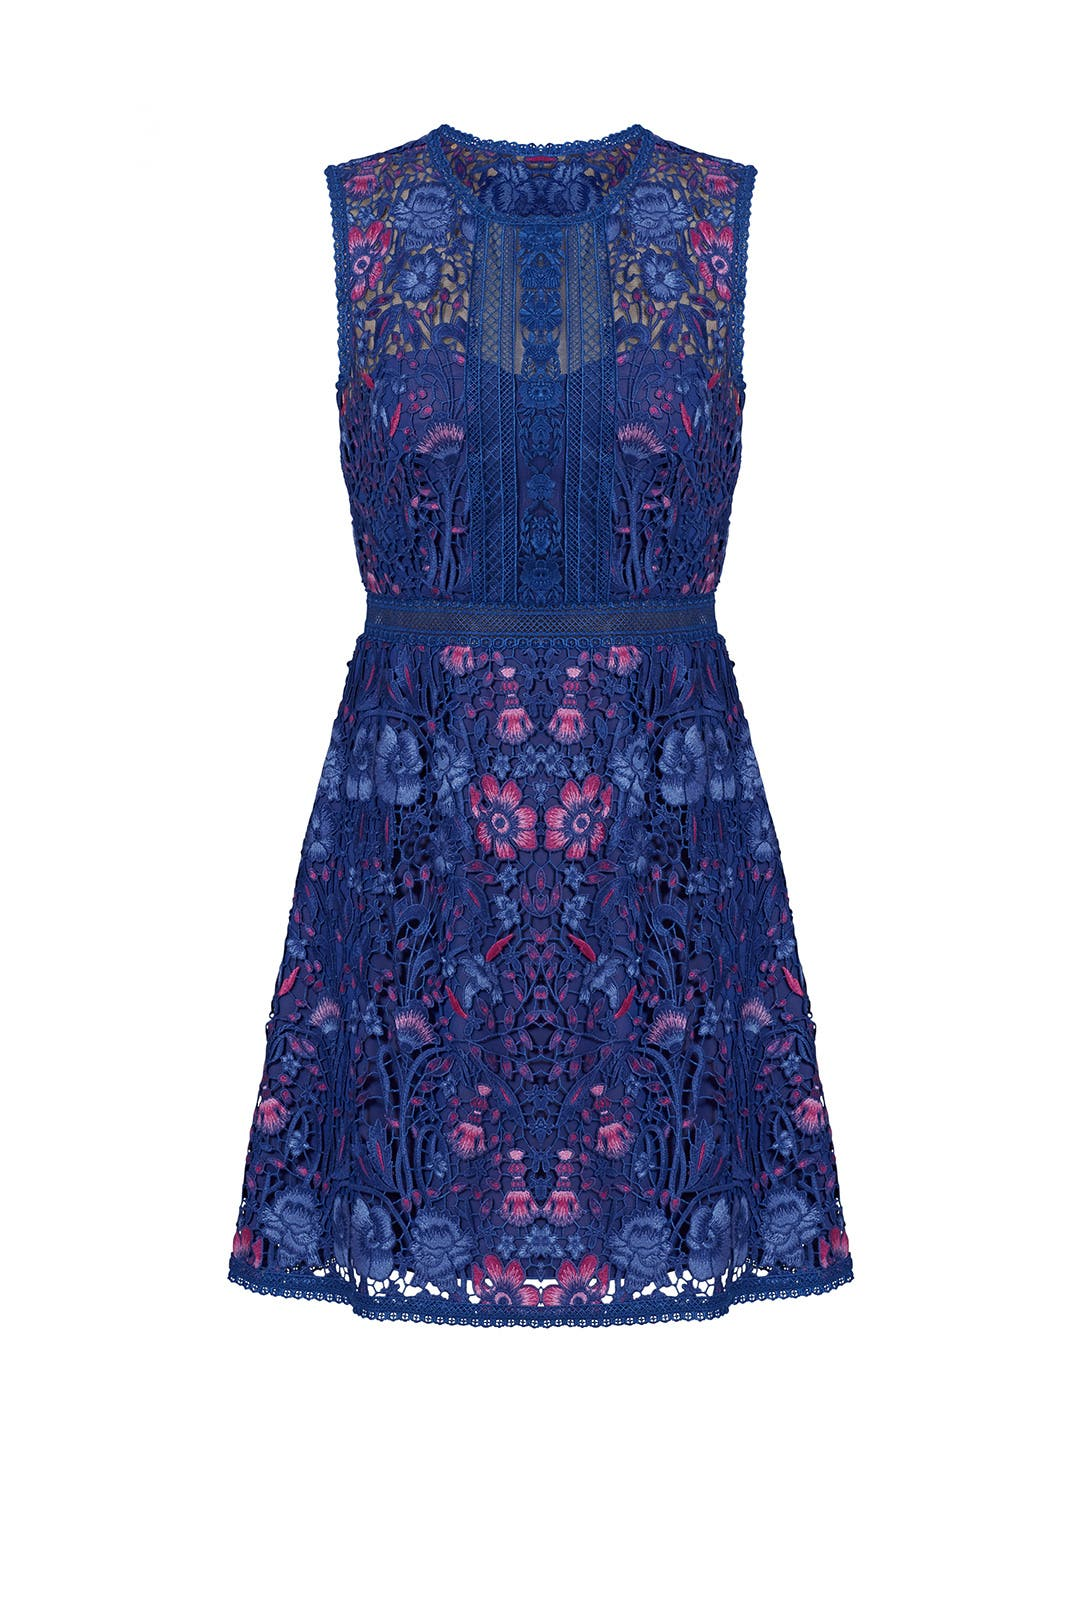 Royal Blue Floral Dress by Marchesa Notte for $100 - $135 | Rent ...